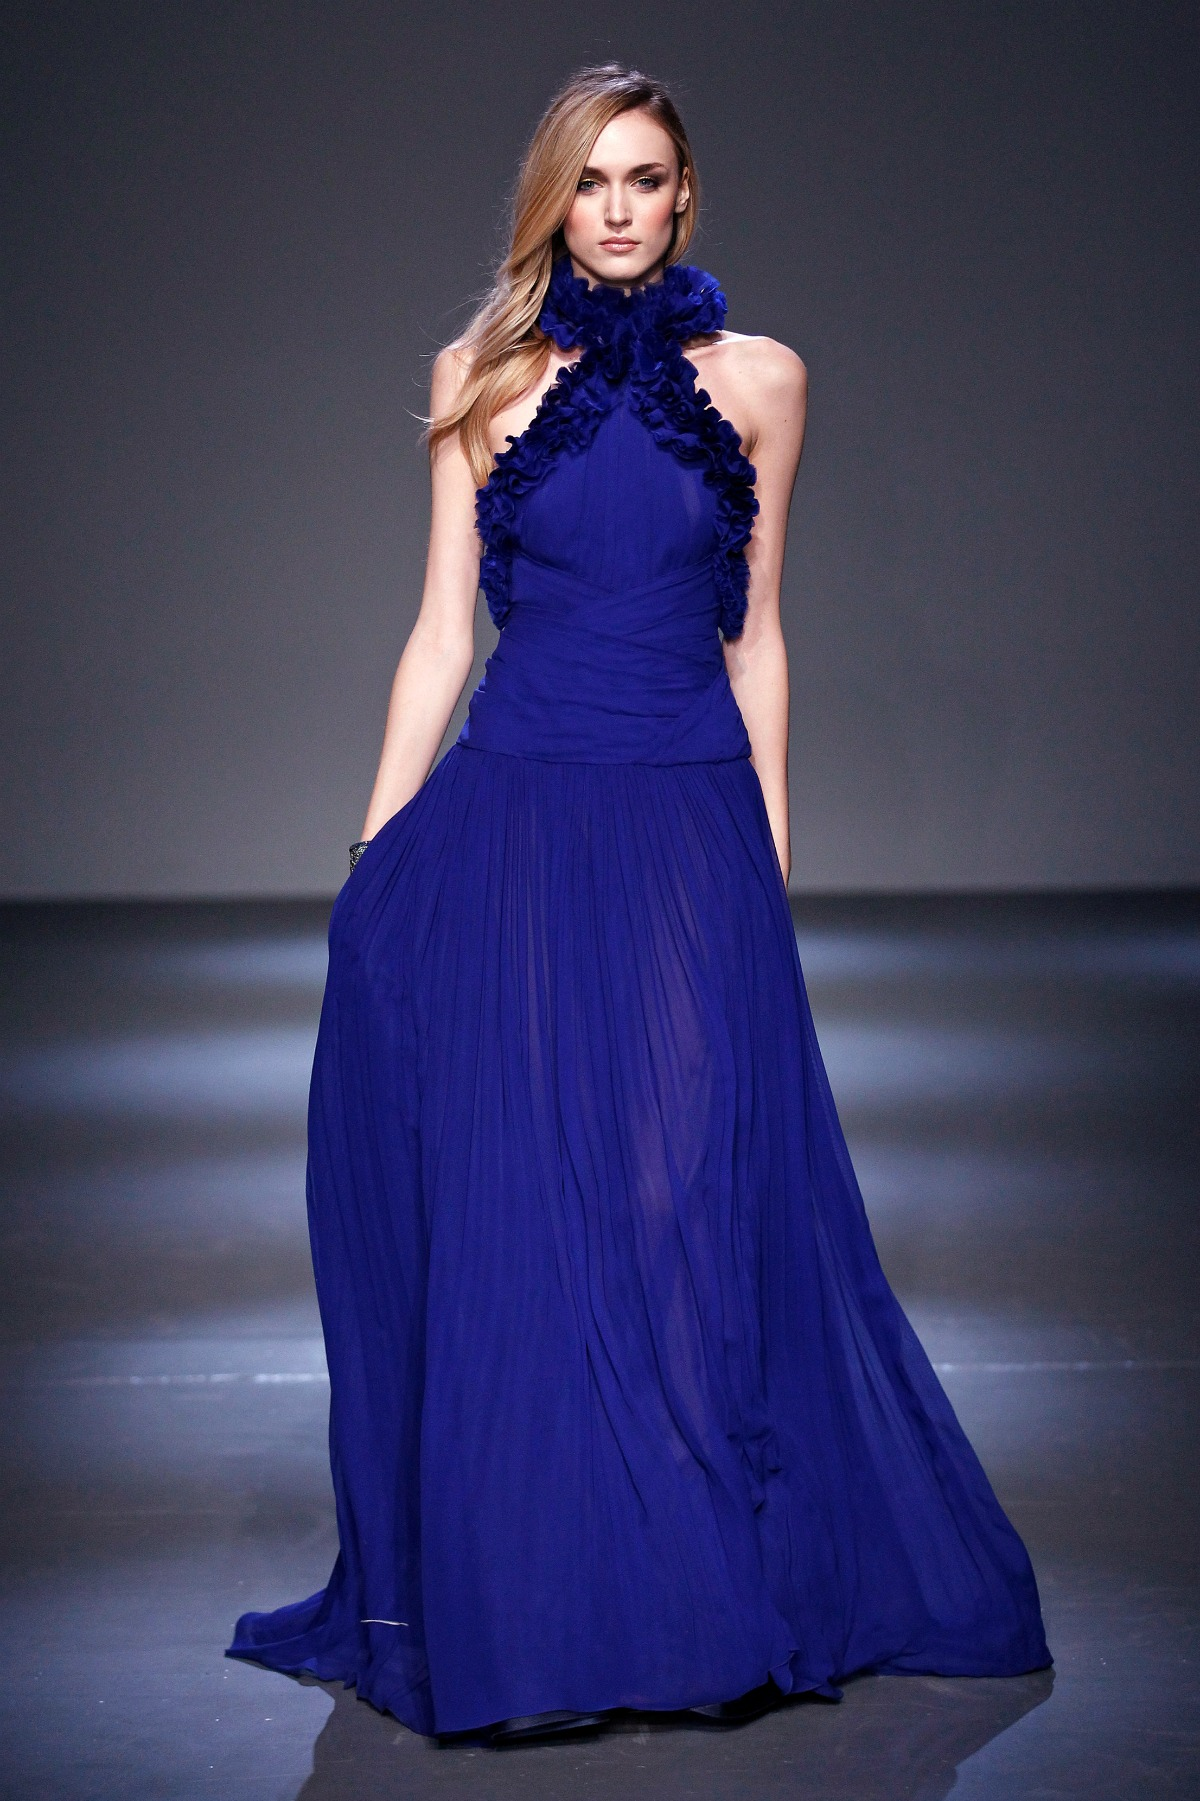 Pamella Roland Fall 2018 Runway I Blue Organza Gown #NYFW #WinterFashion